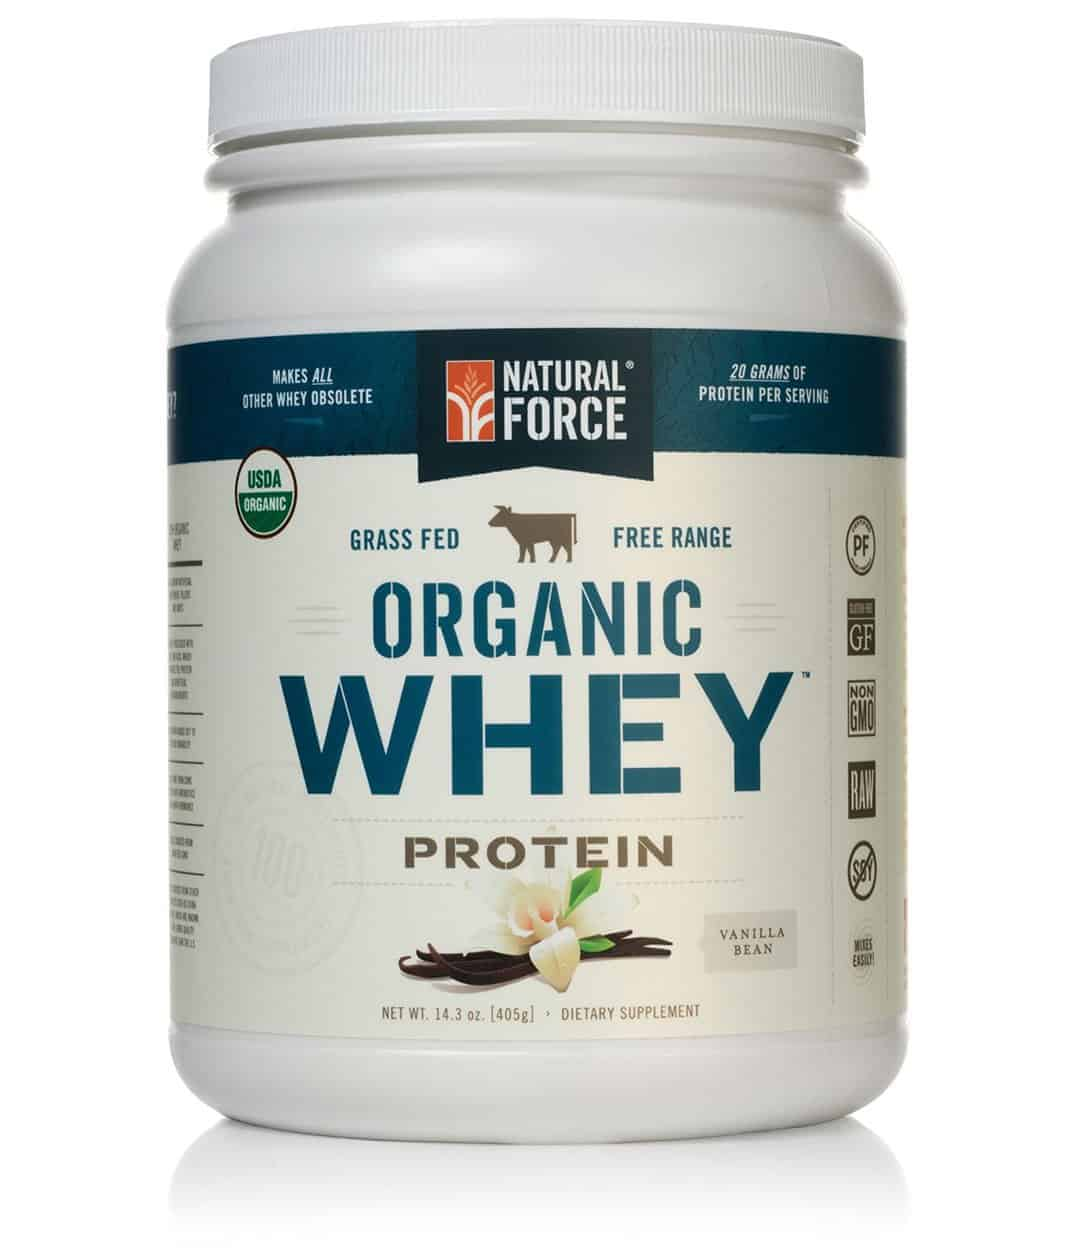 Natural Force® Organic Whey Protein Powder Grass Fed Whey – Undenatured Whey Protein – Raw Organic Whey, Paleo, Gluten Free Natural Whey Protein, Vanilla Bean, 14.3